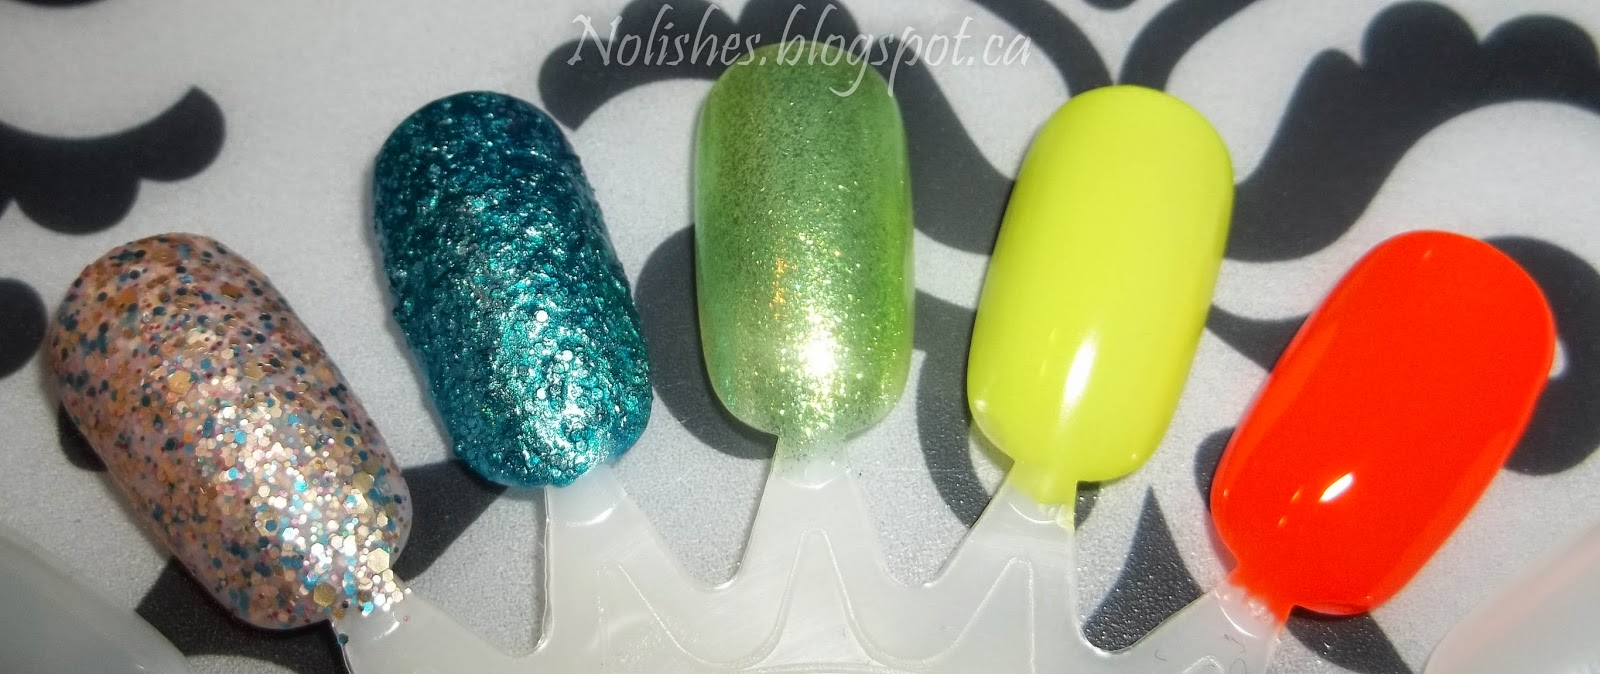 'Hollywood Decadence' is a muted, matte glitter with silver pink and blue, 'Tails of Love' is a textured teal polish, 'Margarita Mambo' is a shimmery lime green, 'Mistful Thinking' is a soft greenish yellow with a matte finish, and 'Kitchy Tangerine' is a slightly reddish orange.